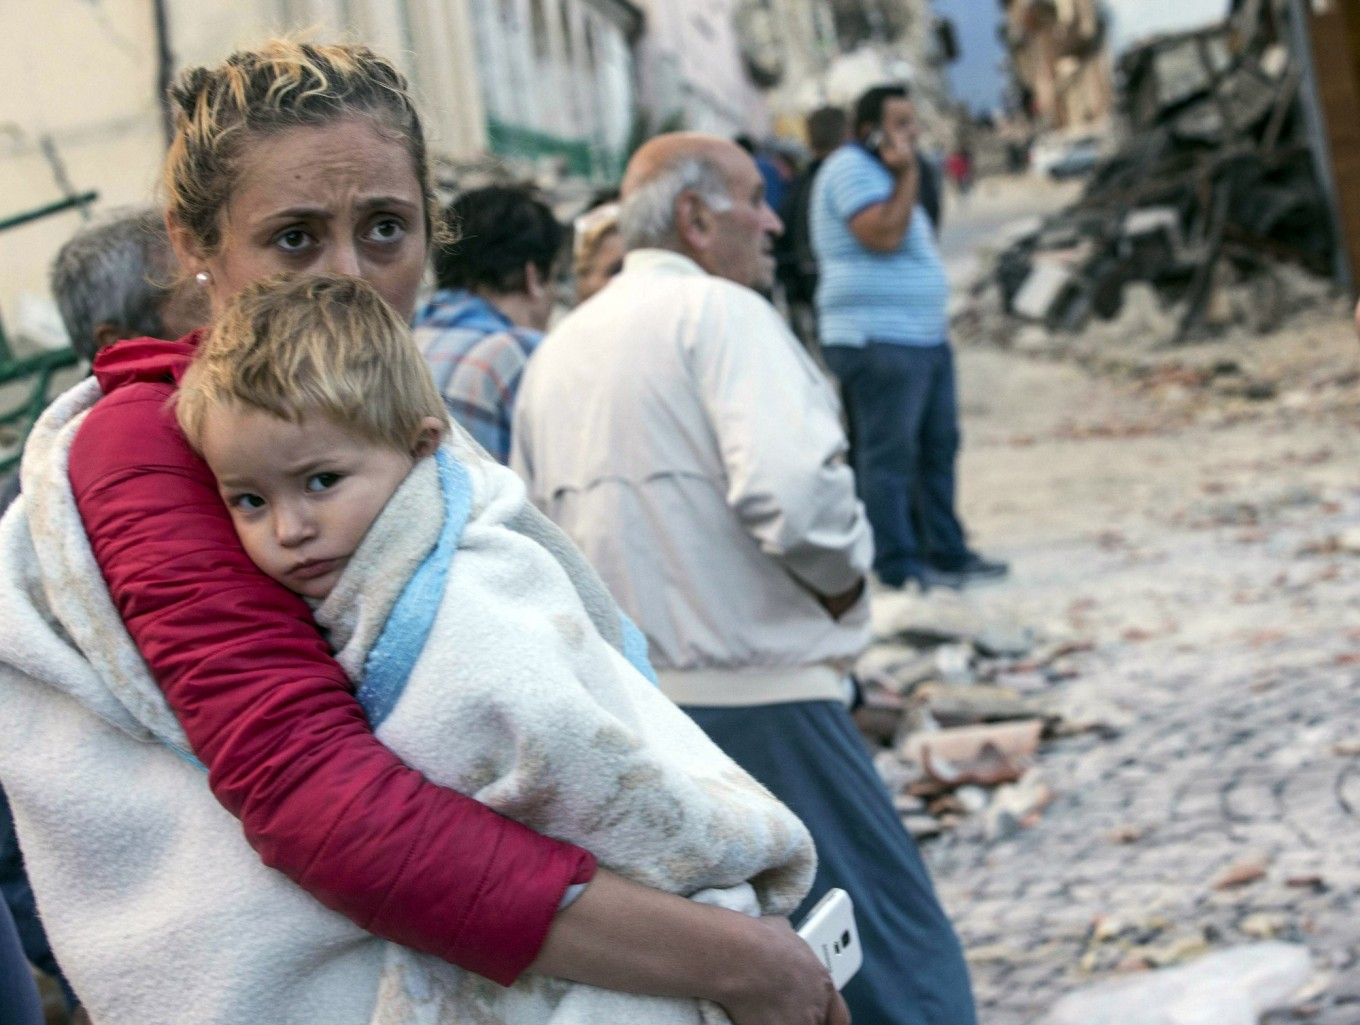 A woman holds a child as they stand in the street following an earthquake, in Amatrice, Italy, Wednesday, Aug. 24, 2016.  The magnitude 6 quake struck at 3:36 a.m. [0136 GMT] and was felt across a broad swath of central Italy, including Rome where residents of the capital felt a long swaying followed by aftershocks. Massimo Percossi/ANSA via AP